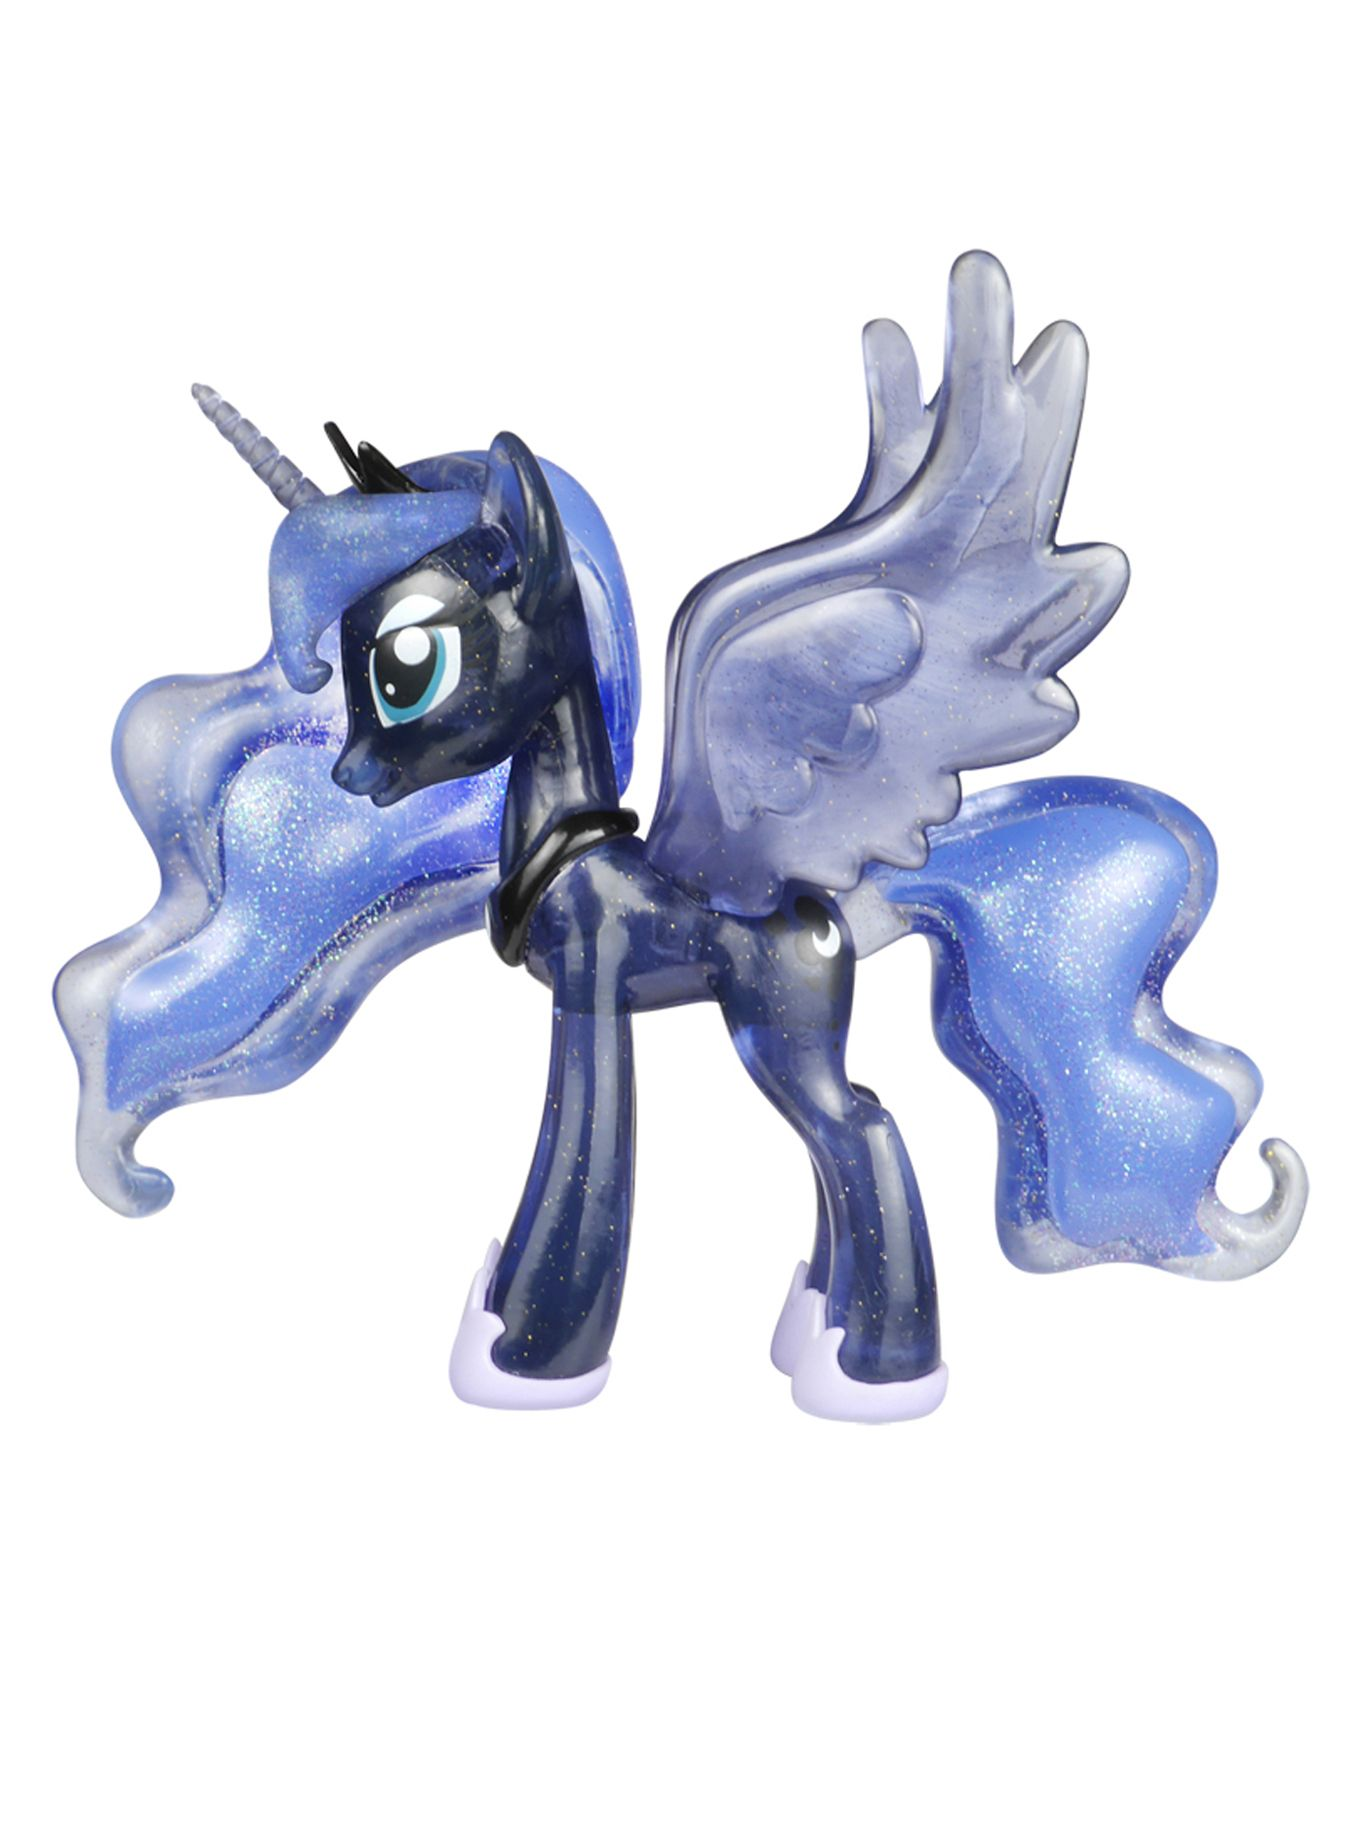 My Little Pony Friendship is Magic Princess Luna Funko Vinyl Figure Sparkly Variant Hot Topic Exclusive - 1 in 24 randomly receive the variant. Ajems is in <3 <3 <3!!!!!!!!!!!! #princessluna #mlpfim #mlp #fim #mlpluna #mlpprincessluna #funko #funkovinyl #mlpvinyl #mlpfunko #hottopic #hottopcimlp #hottopicexclusive #hottopicfunko